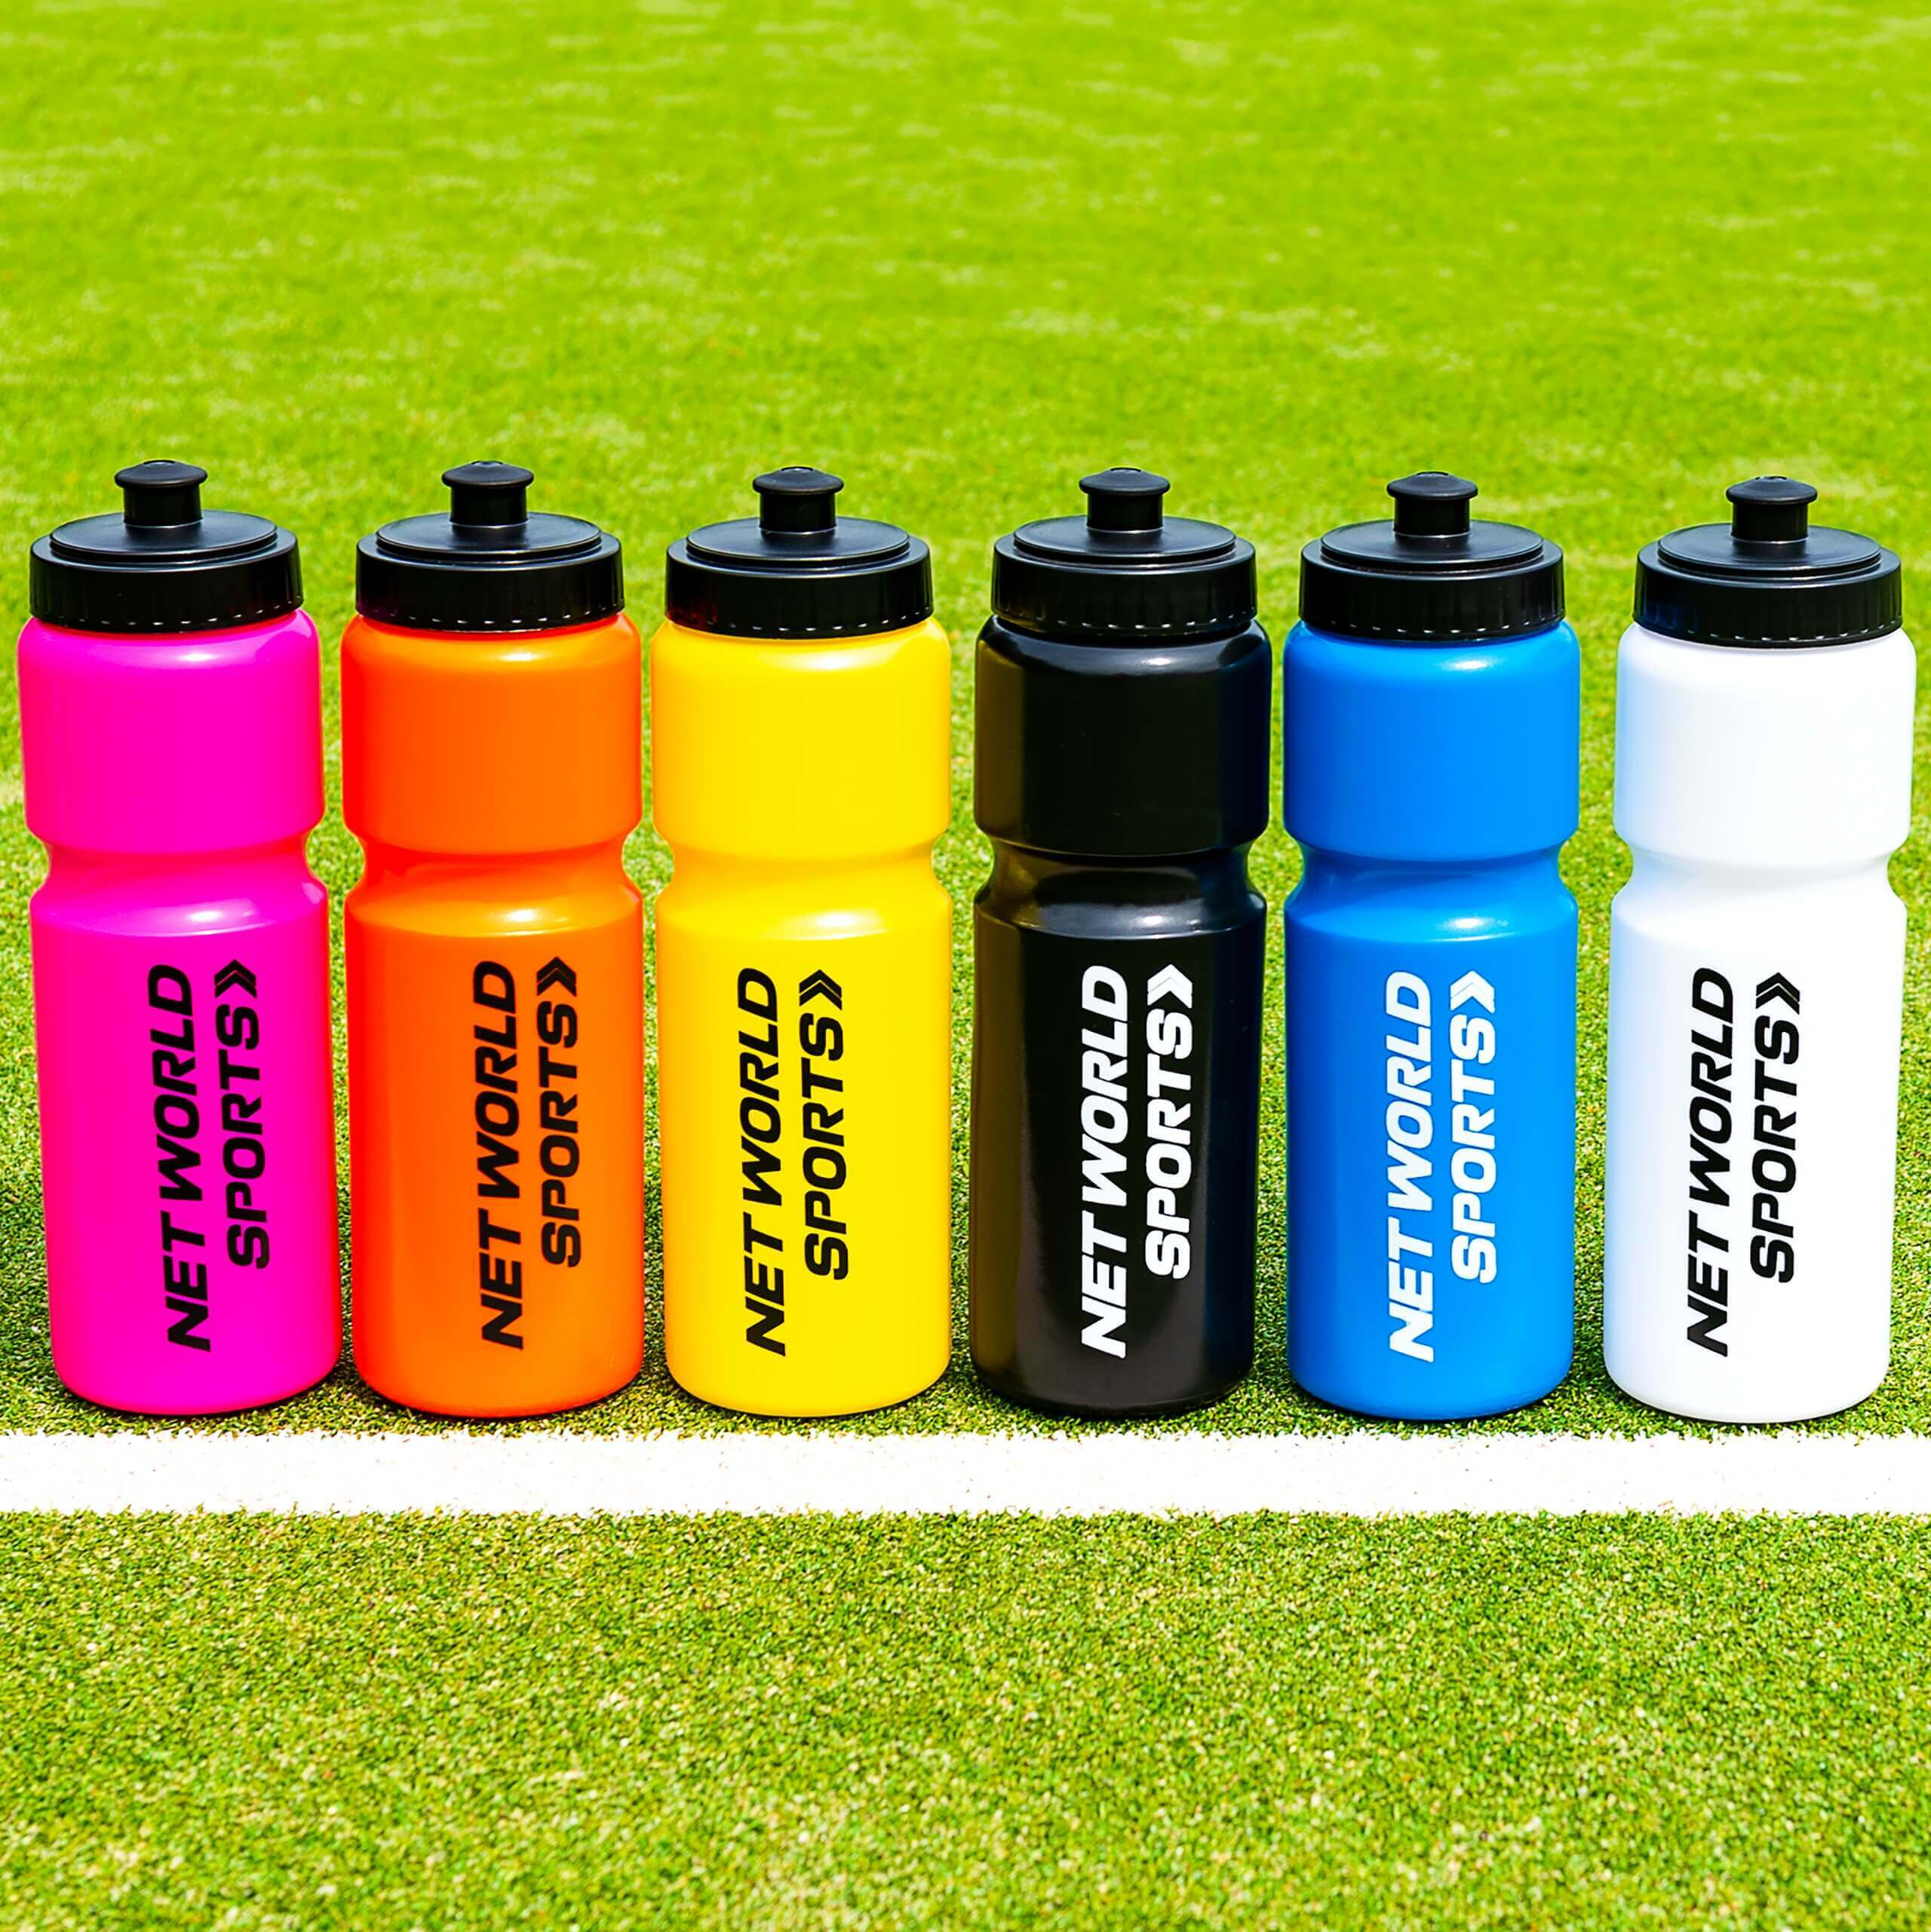 Sports Drink Water Bottles (25fl oz)